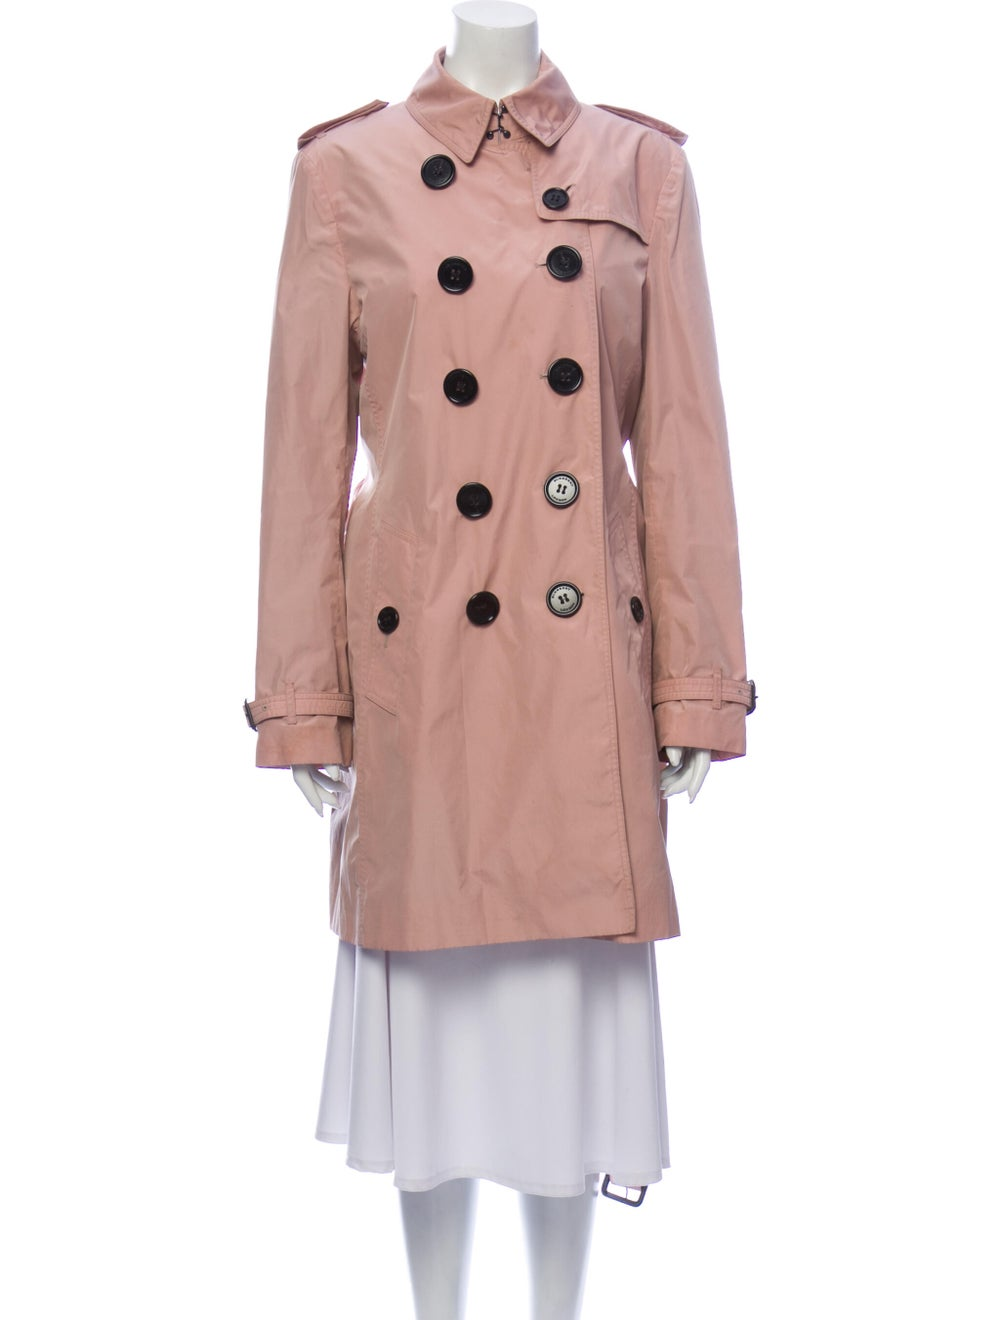 Burberry London Trench Coat Pink - image 4